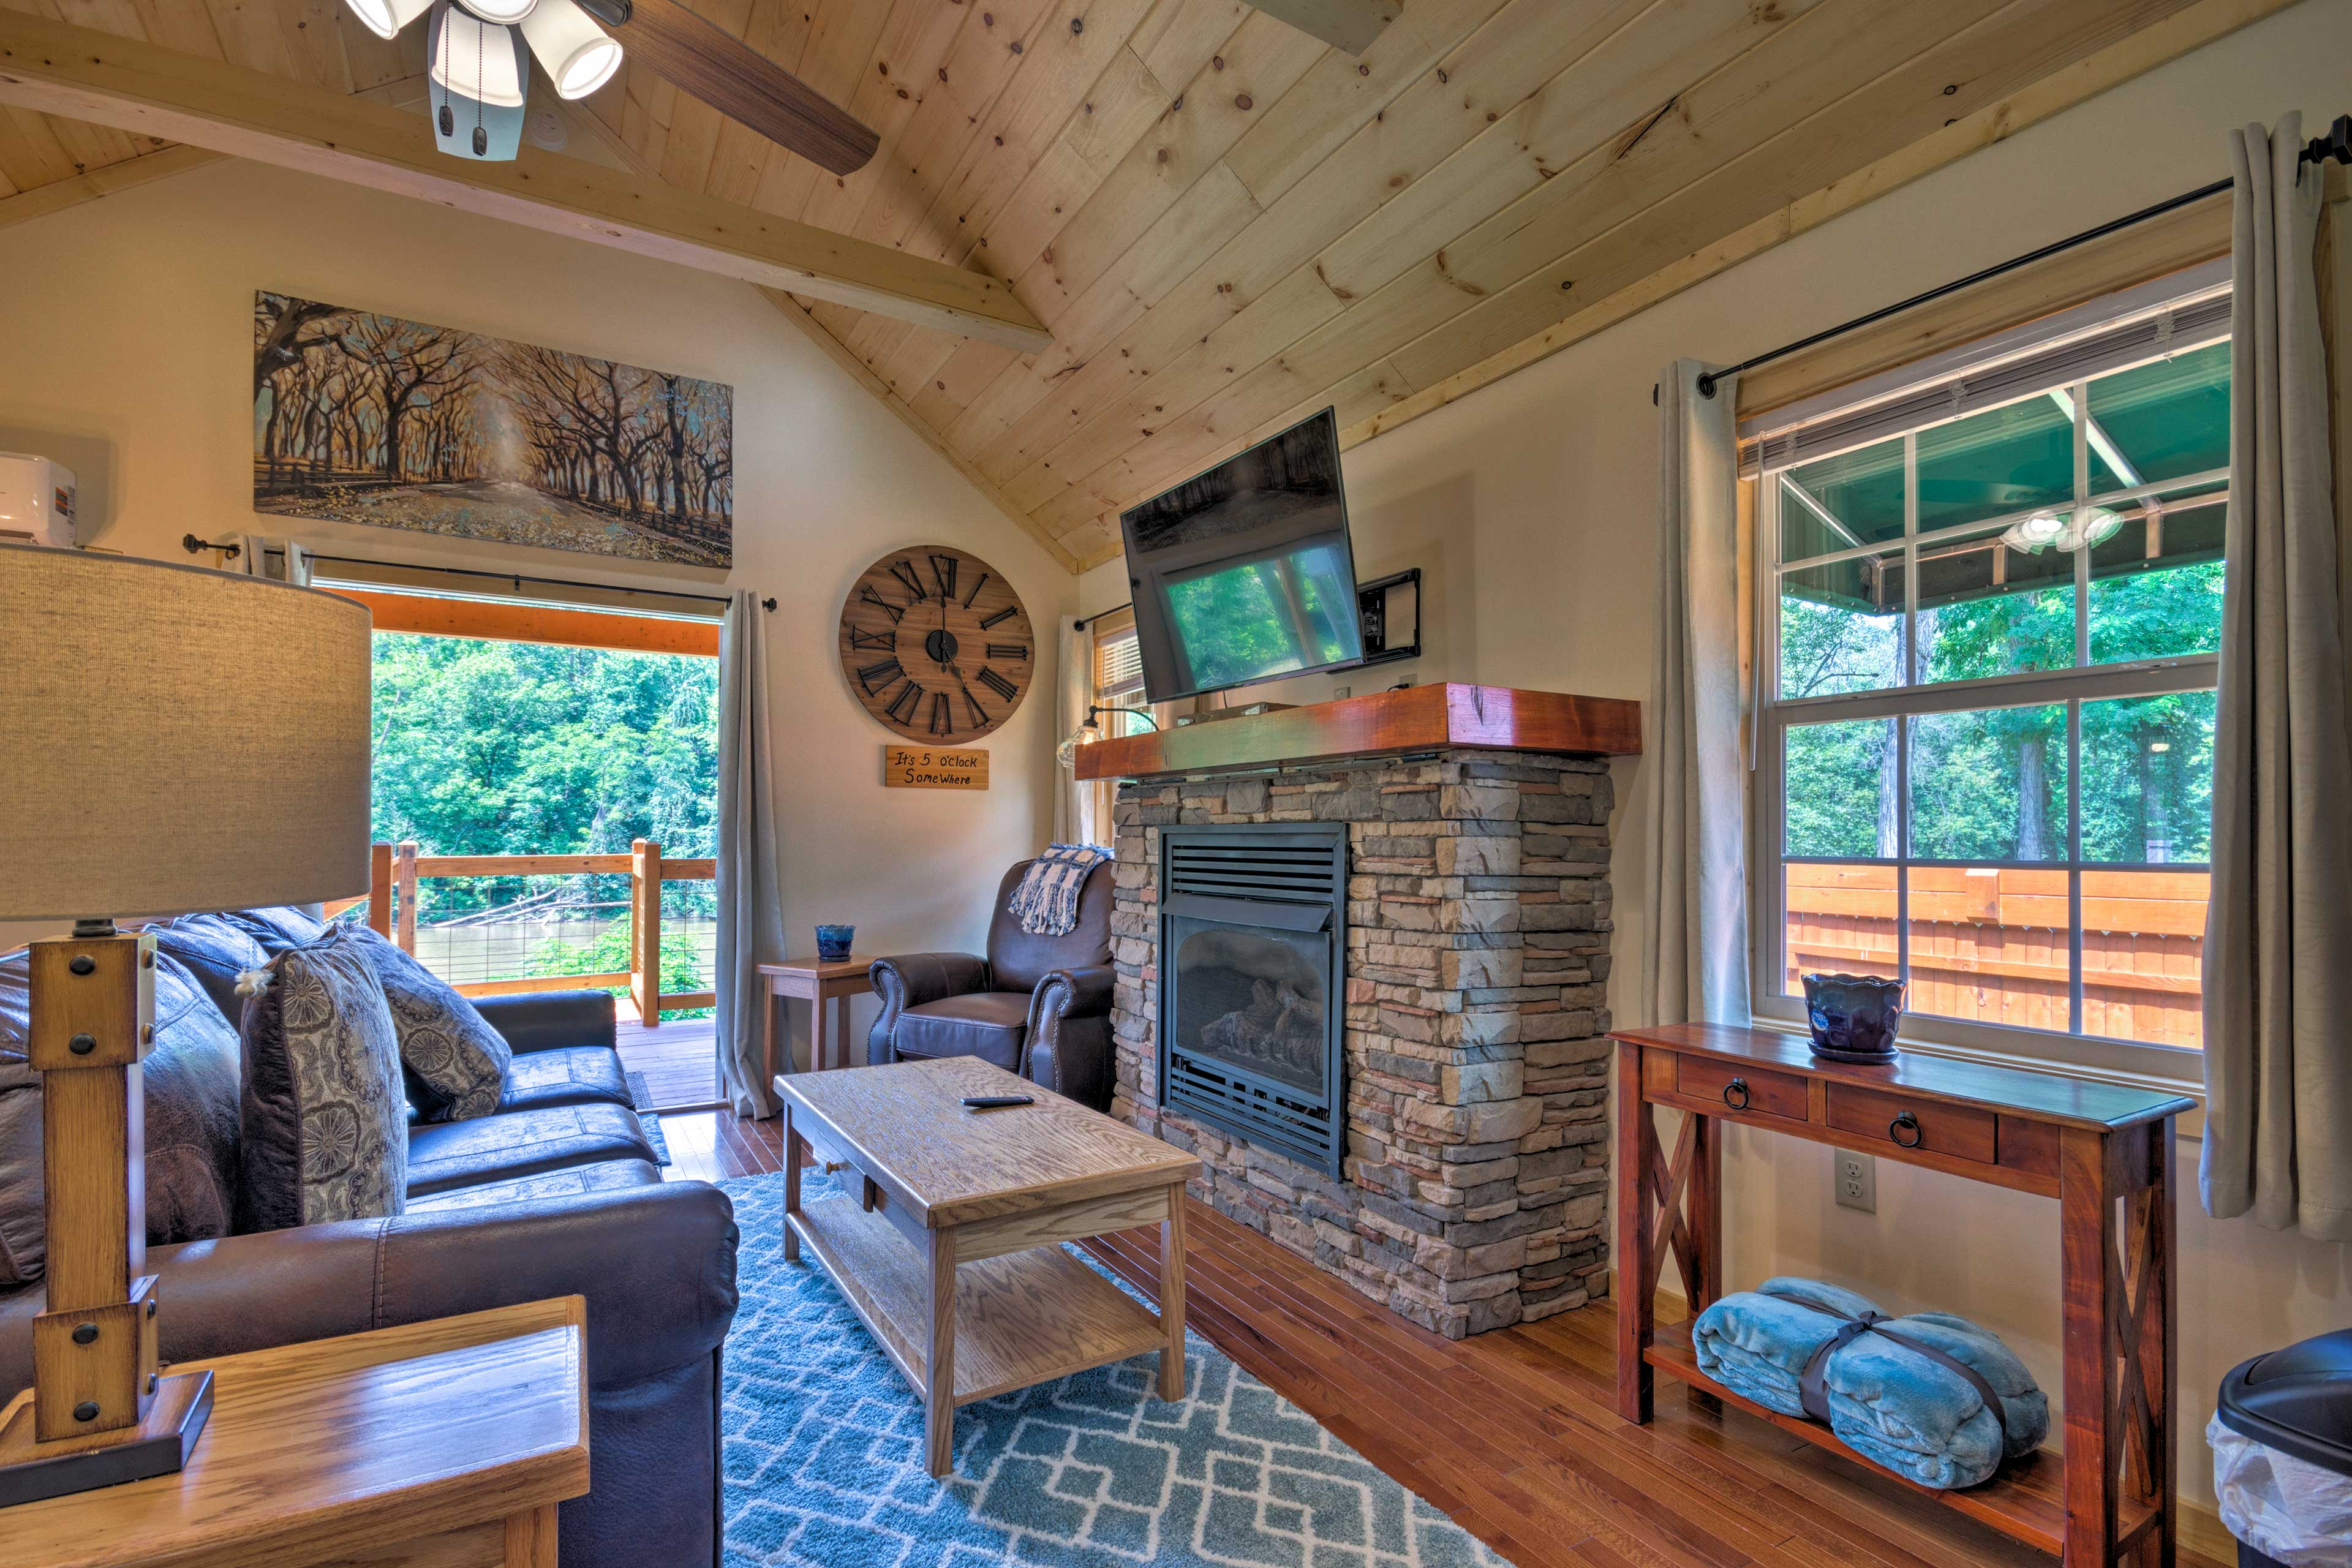 Turn on the gas fireplace once the sun sets.